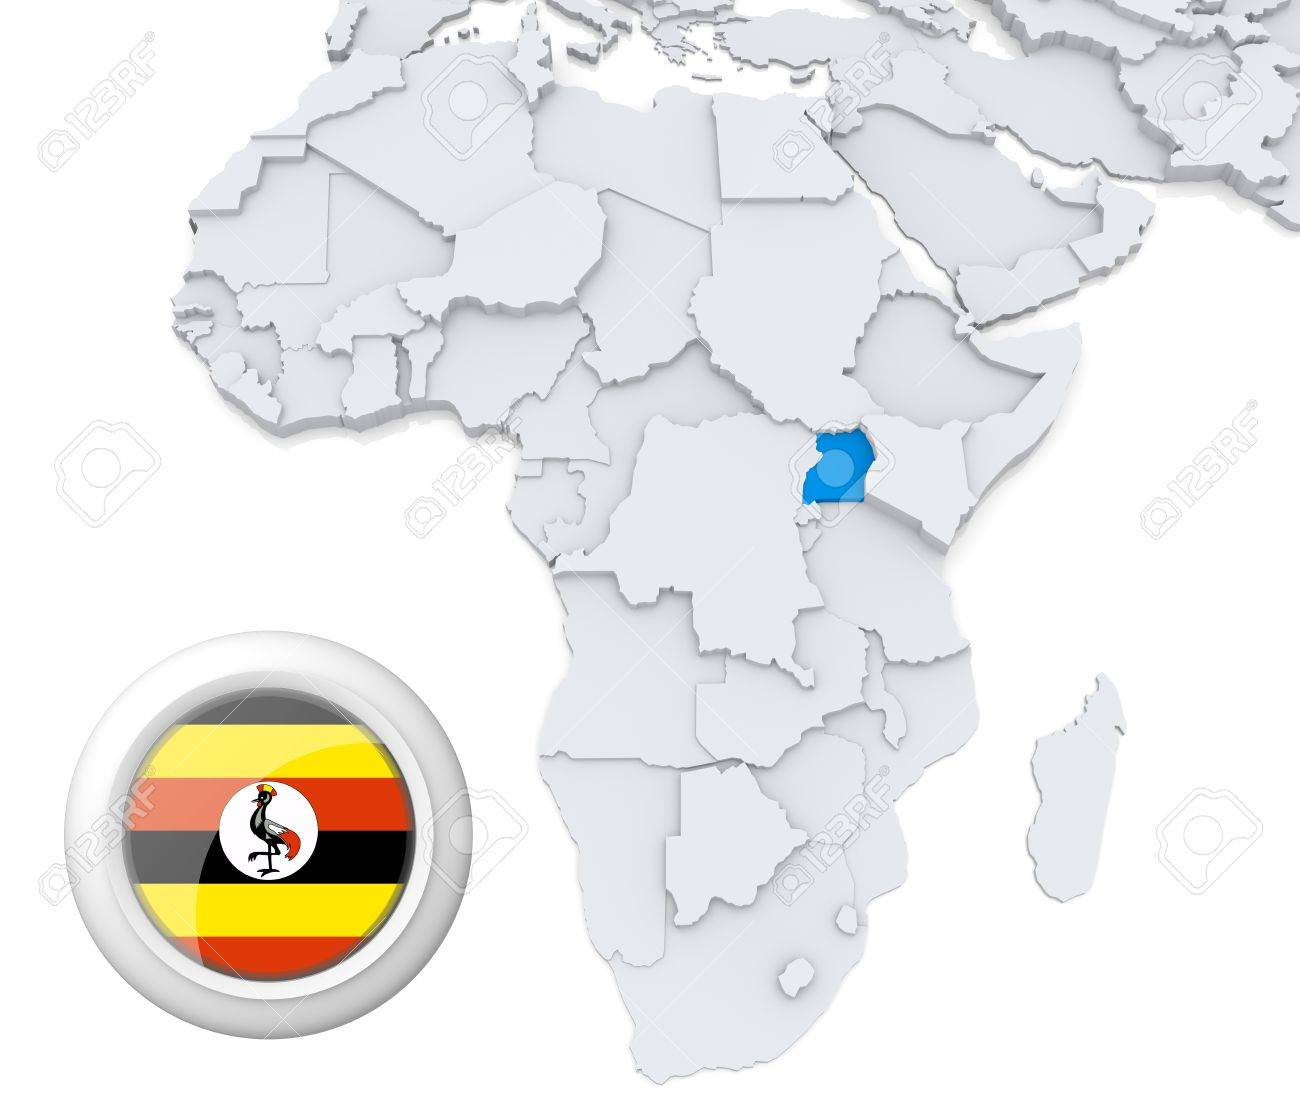 3D Modeled Map Of Africa With Highlighted State Of Uganda With